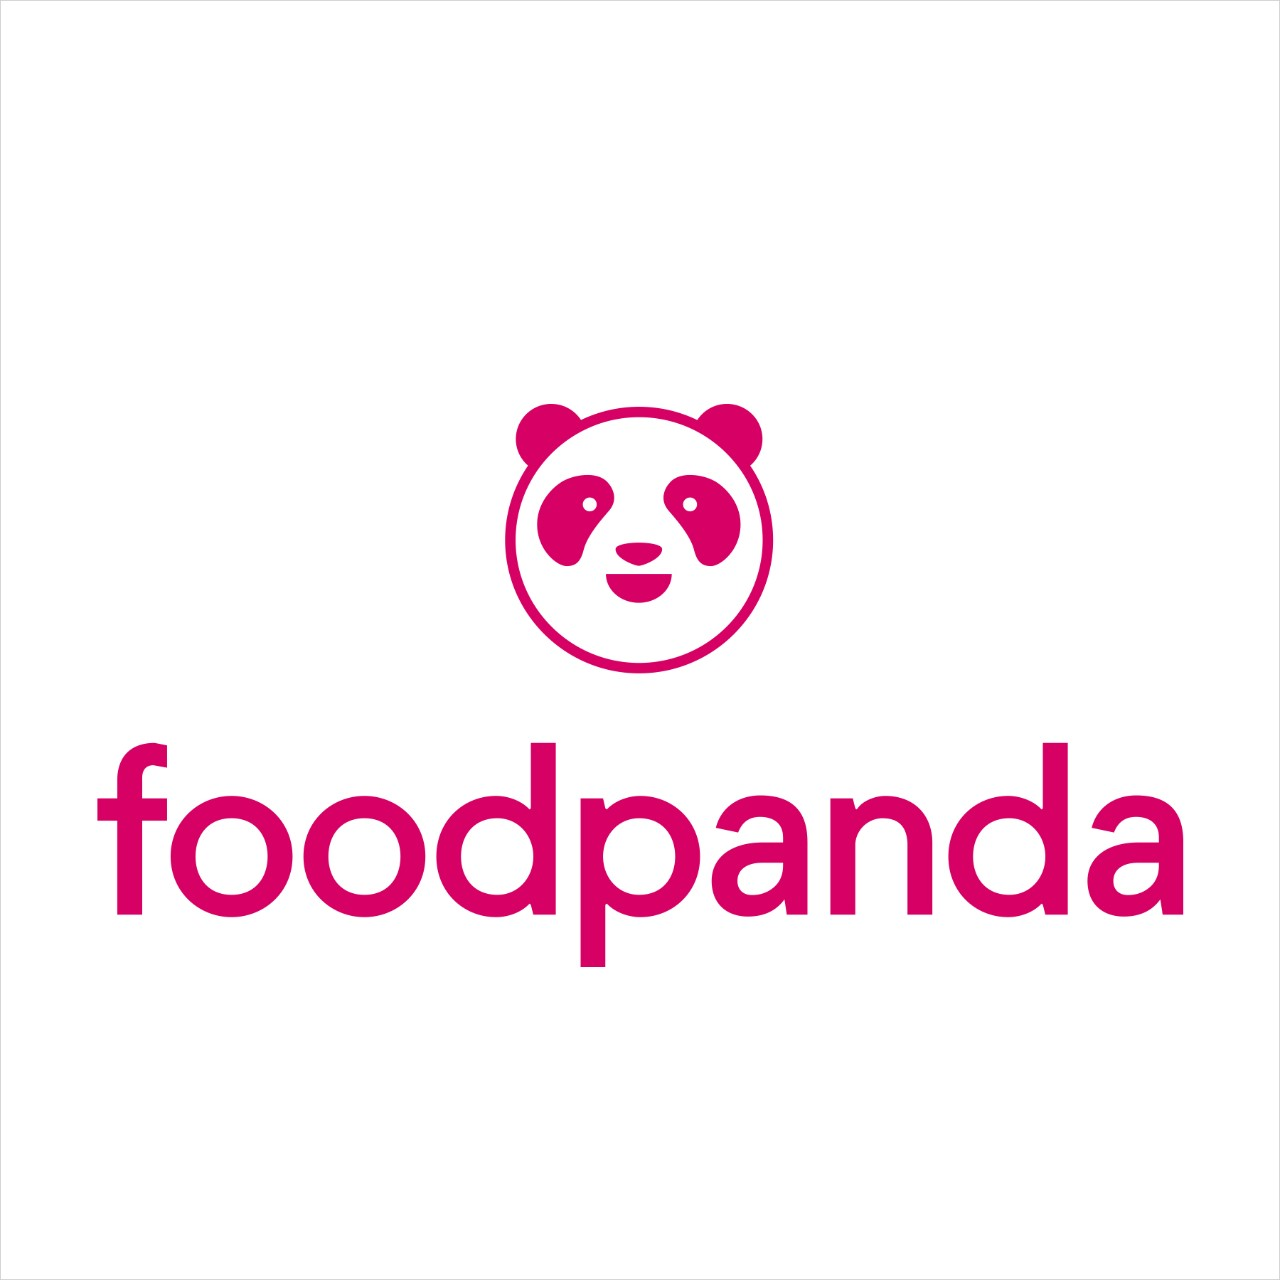 Foodpanda logoA huge gift box tide on top of a car; image used for HSBC Taiwan Co-Brand Card conversion page.